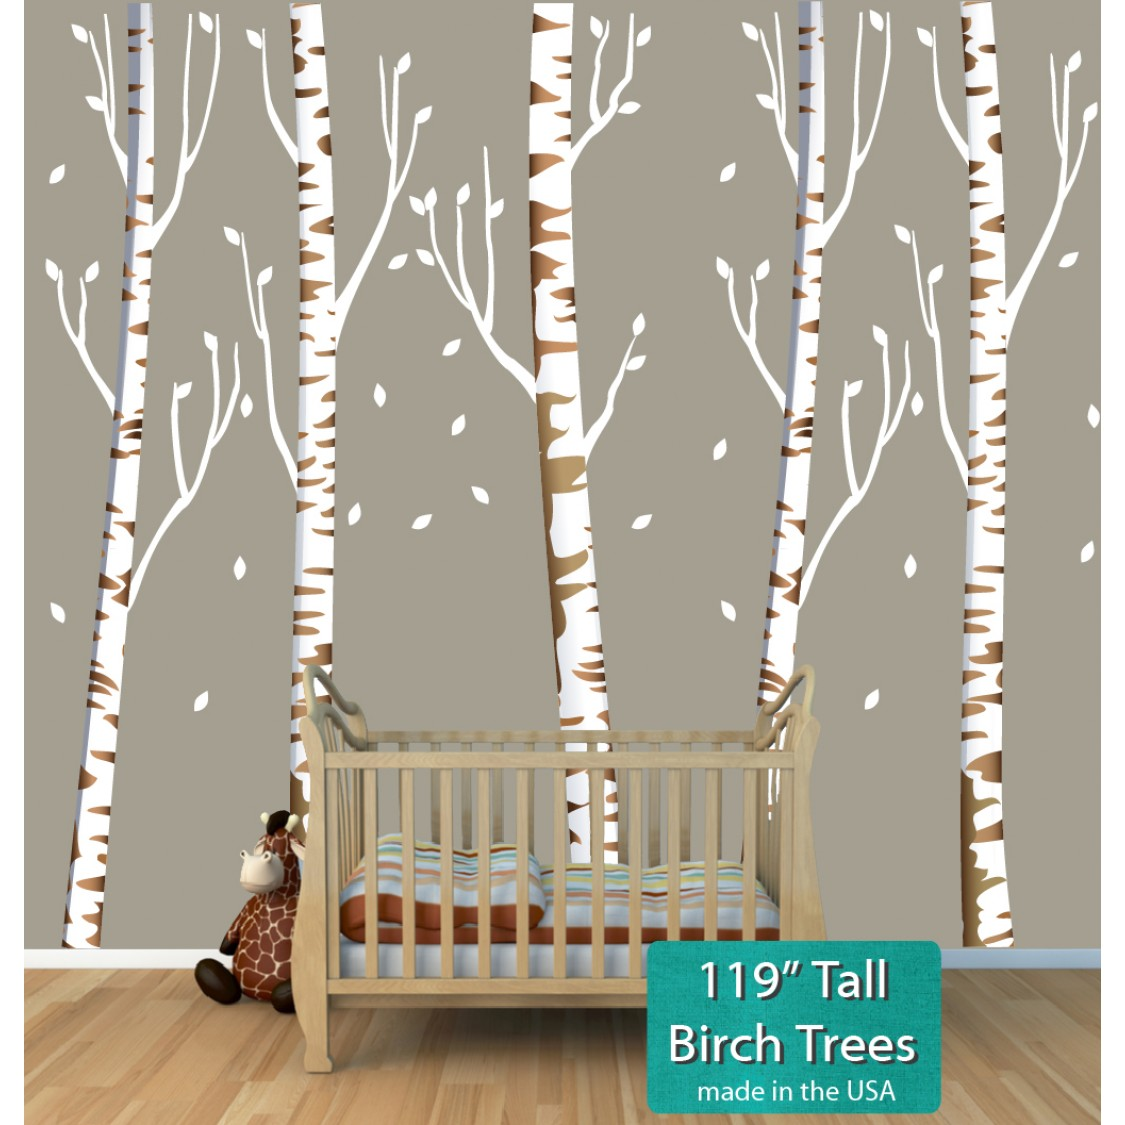 Birch tree murals for nursery or baby room for Birch trees mural